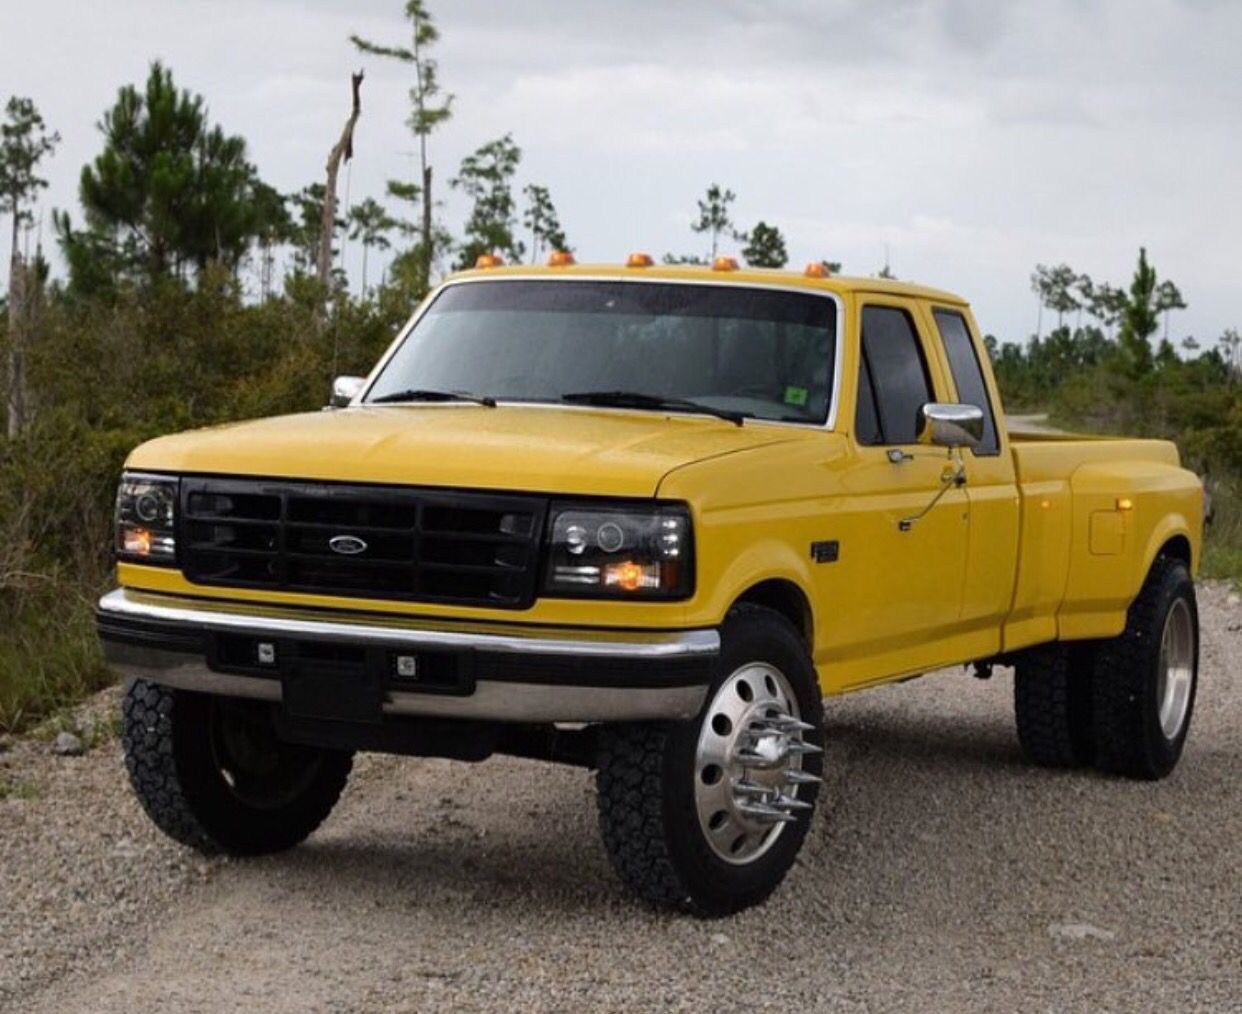 Sharp Looking Yellow Ford Dually With Just The Right Amount Of